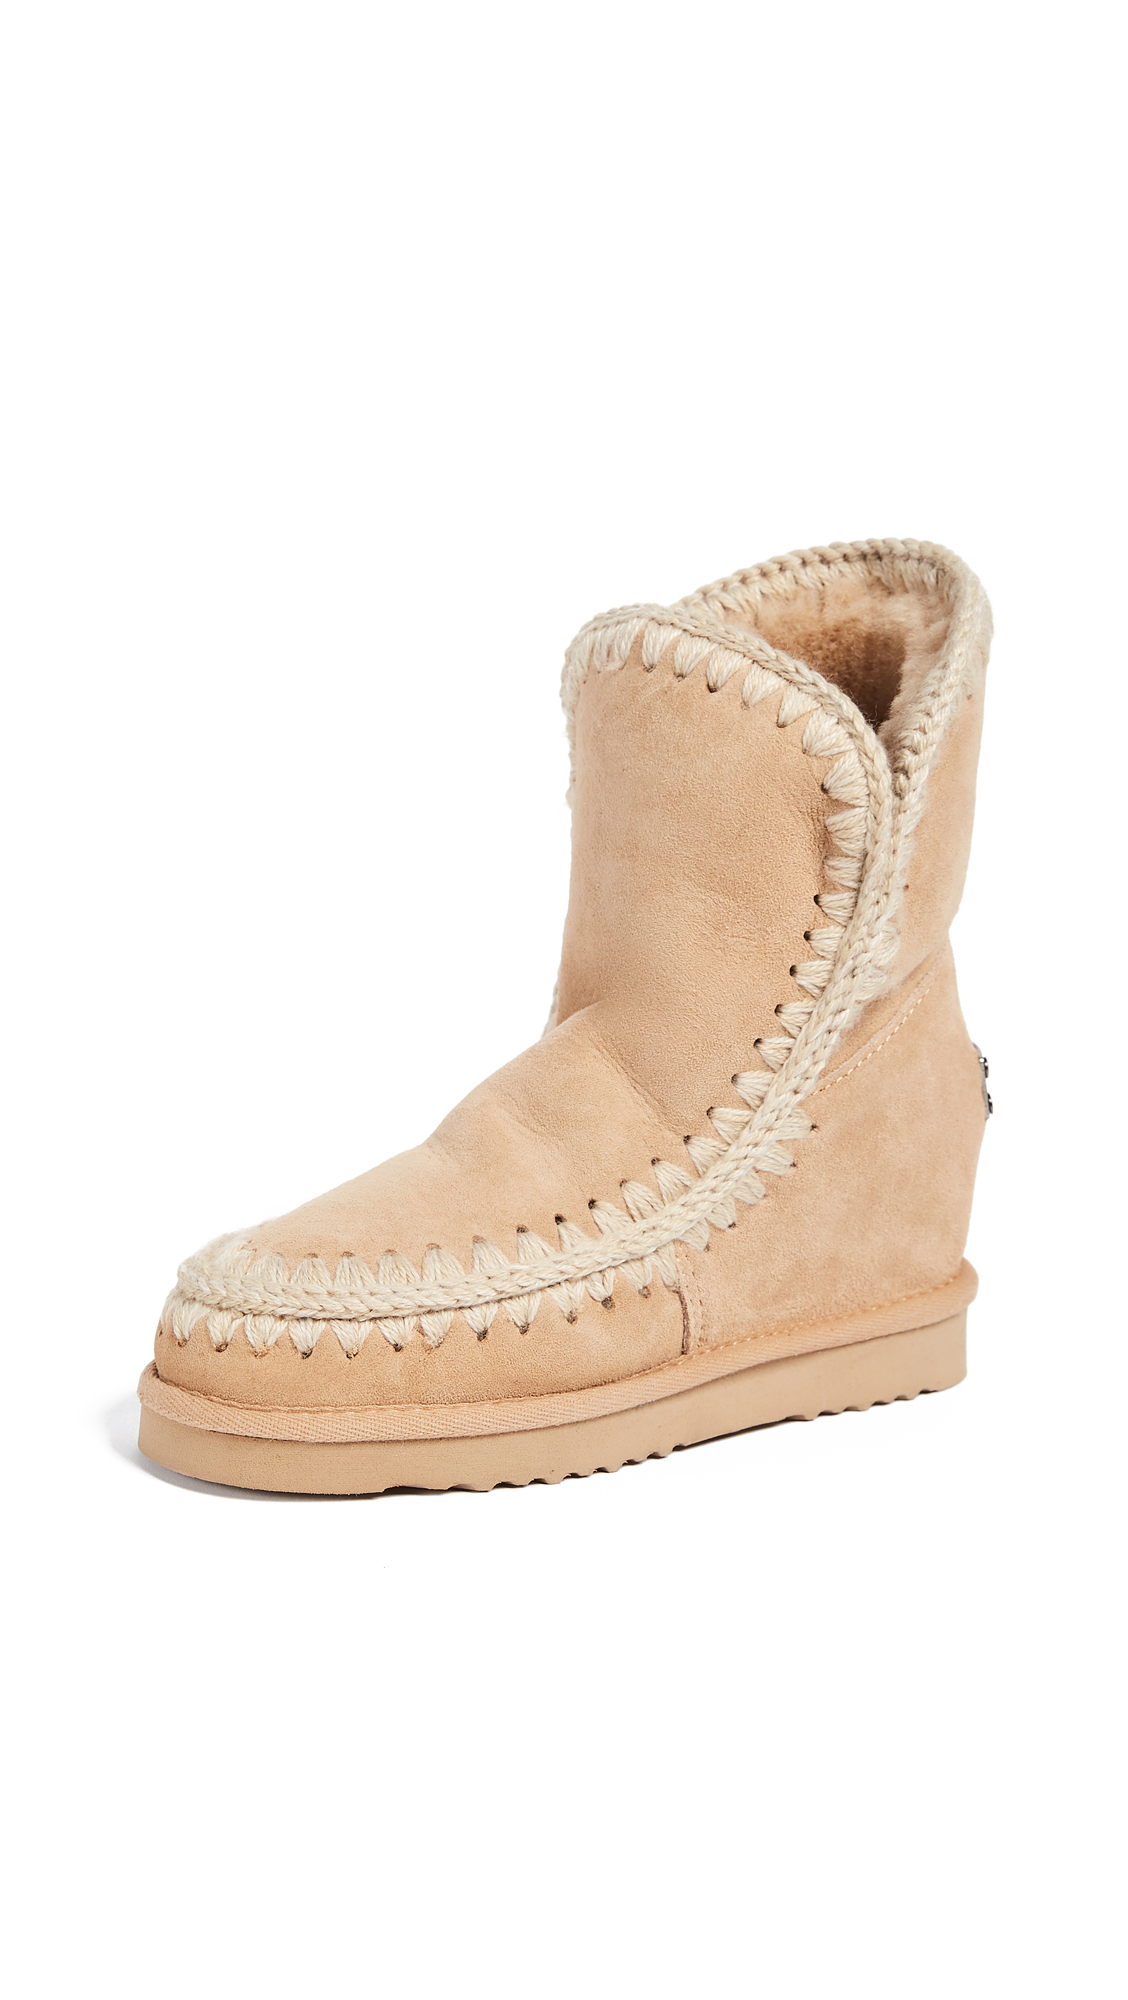 ONE by Inner Wedge Short Boots - Tan